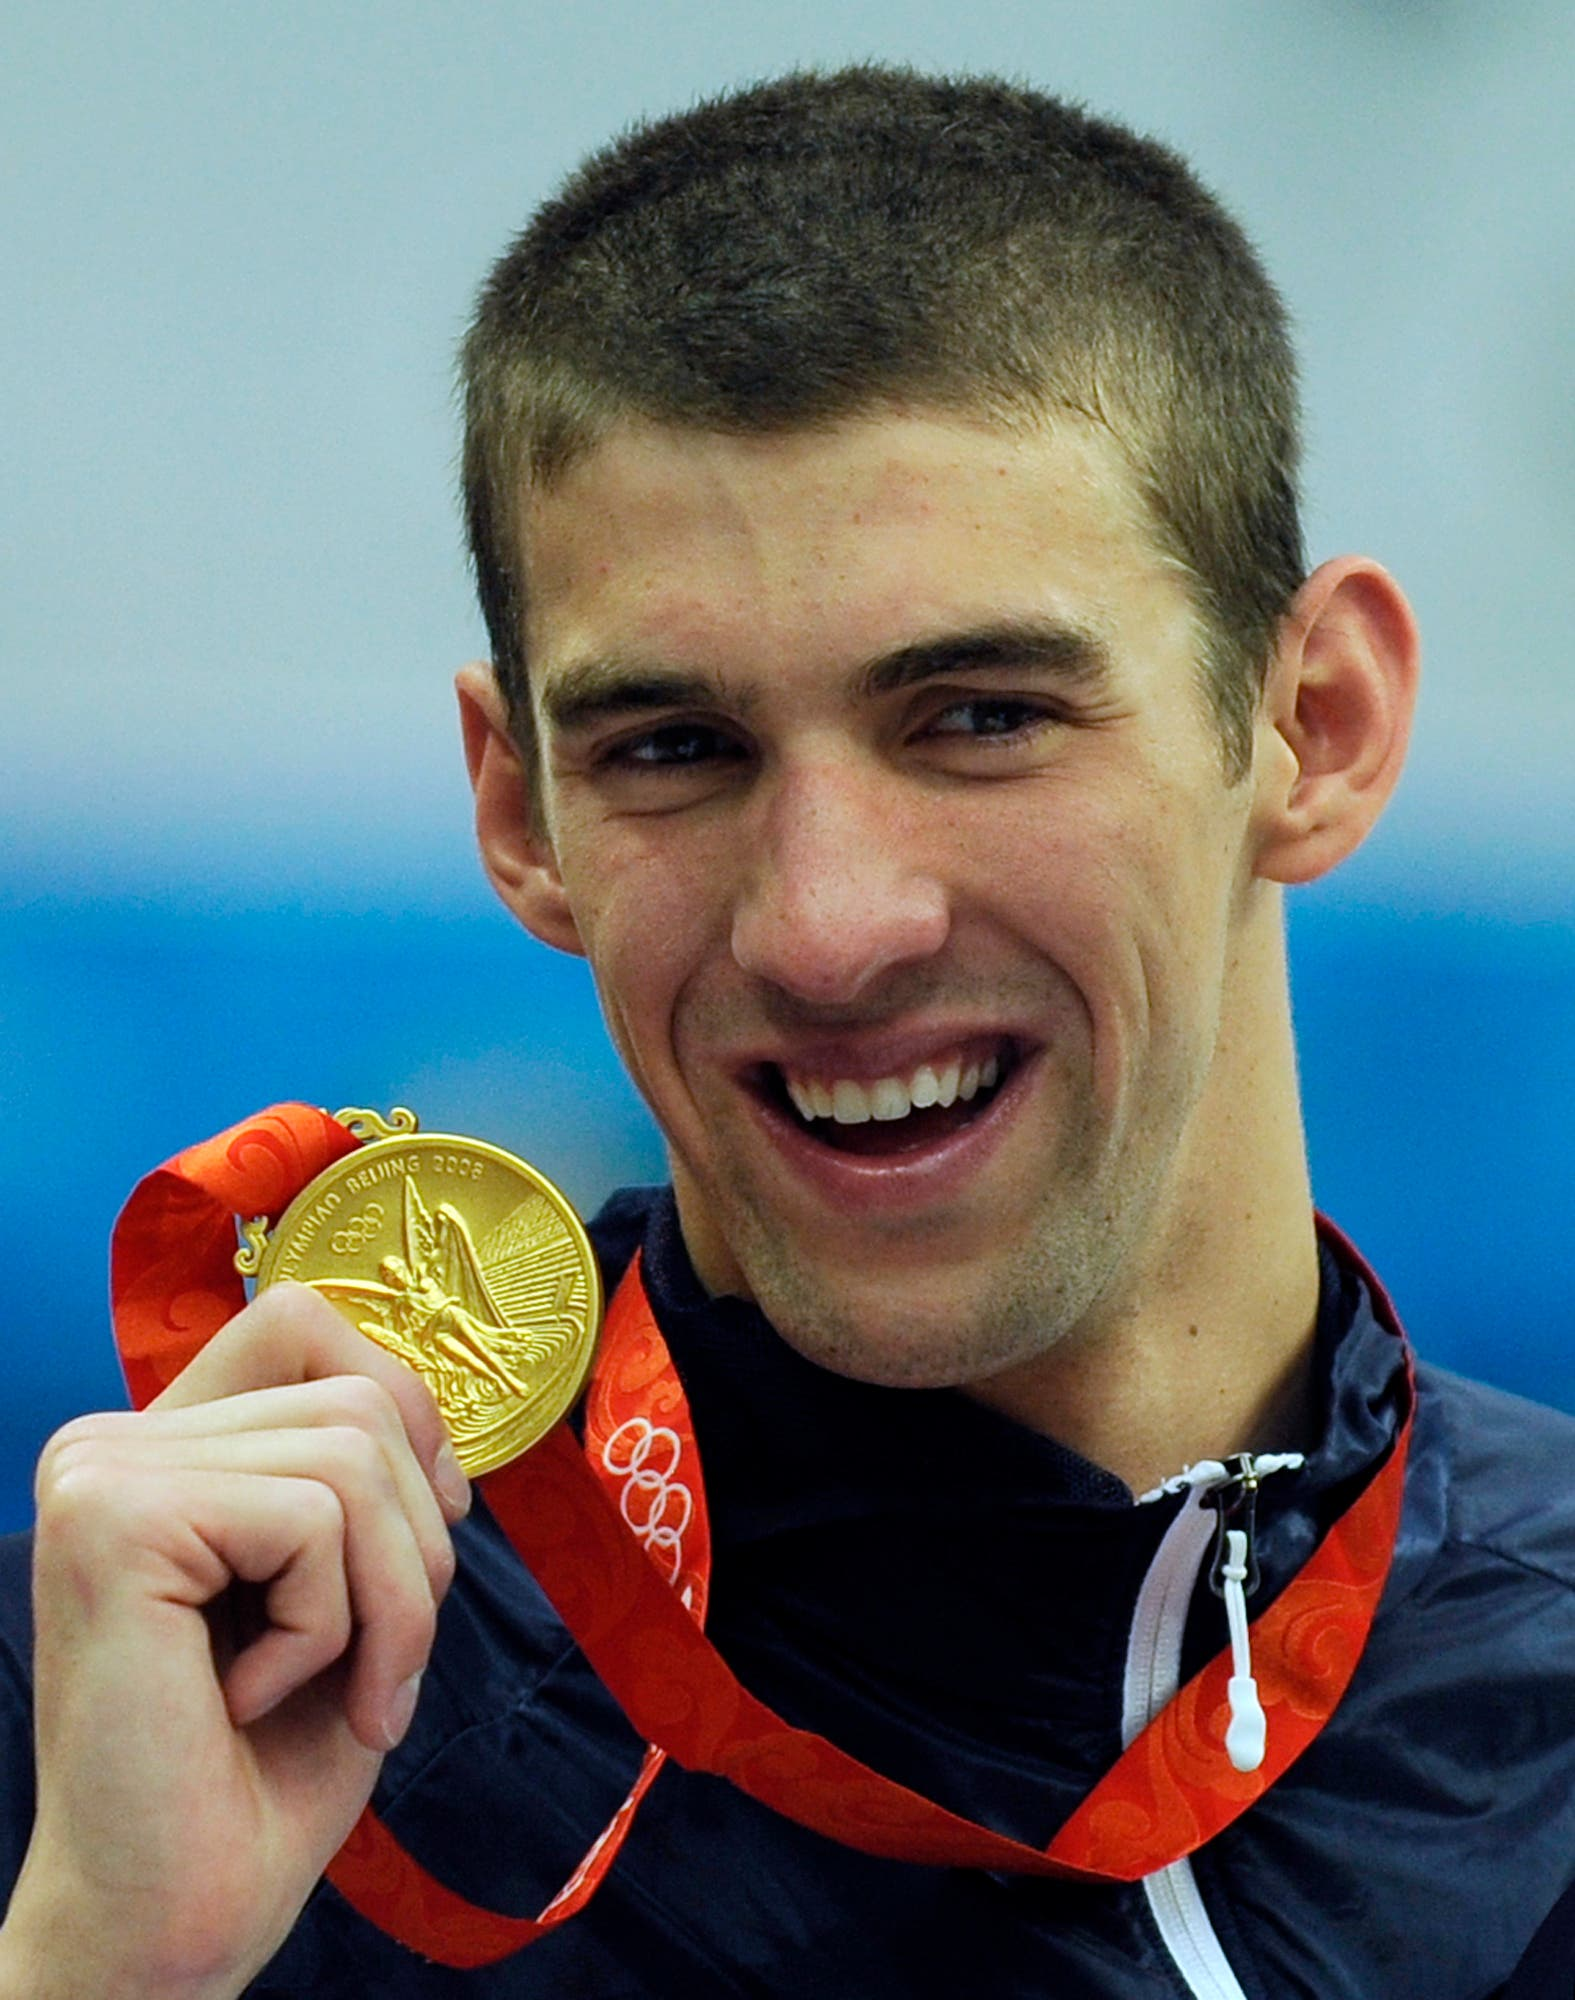 Michael Phelps displaying his eighth gold medal after the men's 4x100-meter medley relay final at the Beijing 2008 Olympics in Beijing. (AP)